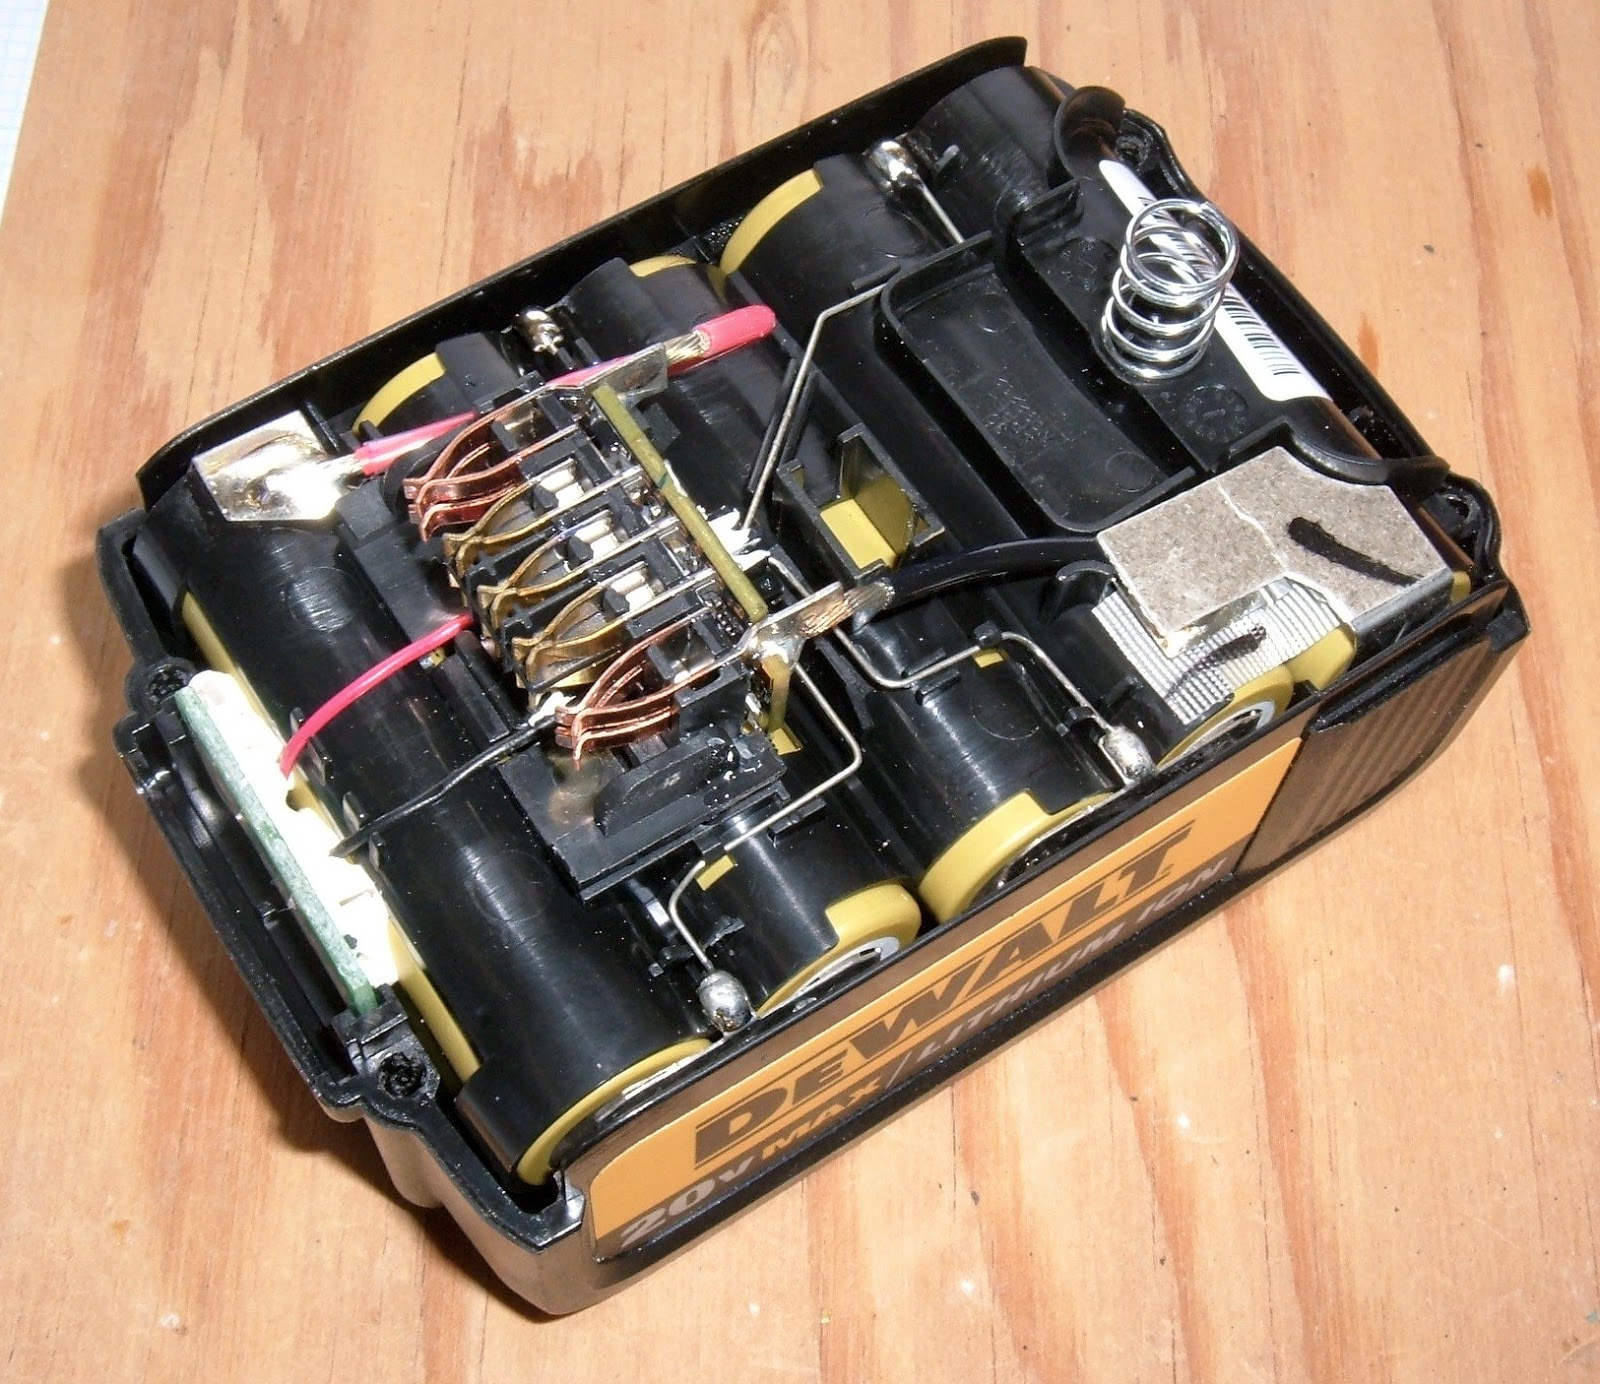 Syonyks Project Blog Dewalt 20v Max 30ah Battery Pack Teardown The Kill Switch Be Hooked Up Positive Or Negative To From This Angle Double Height B And Terminals Are Visible As Is State Of Charge Indicator